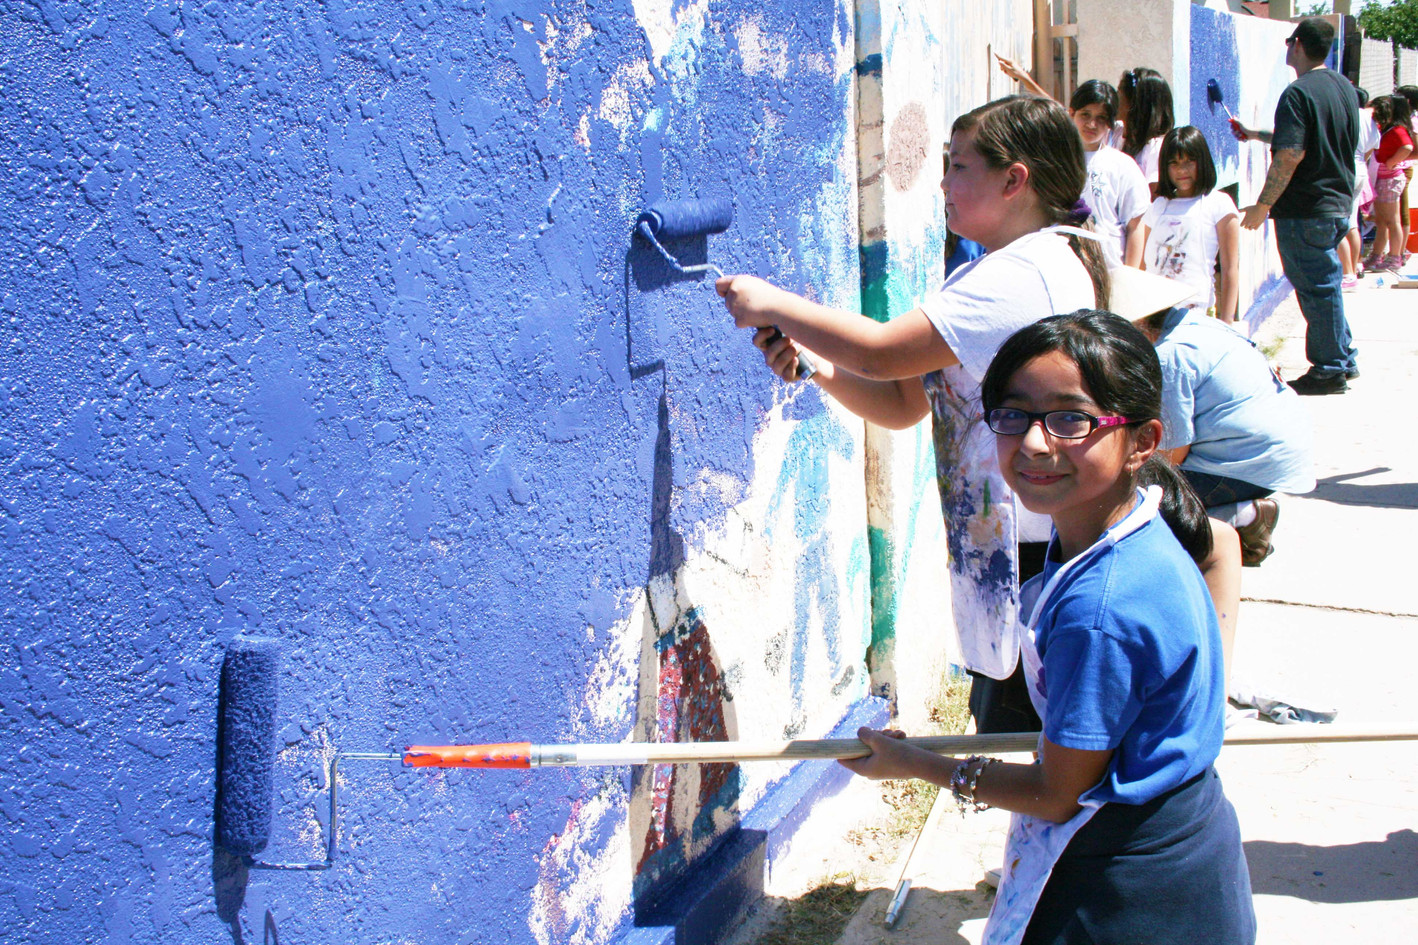 Students painting walls at Hedrick Elementary School